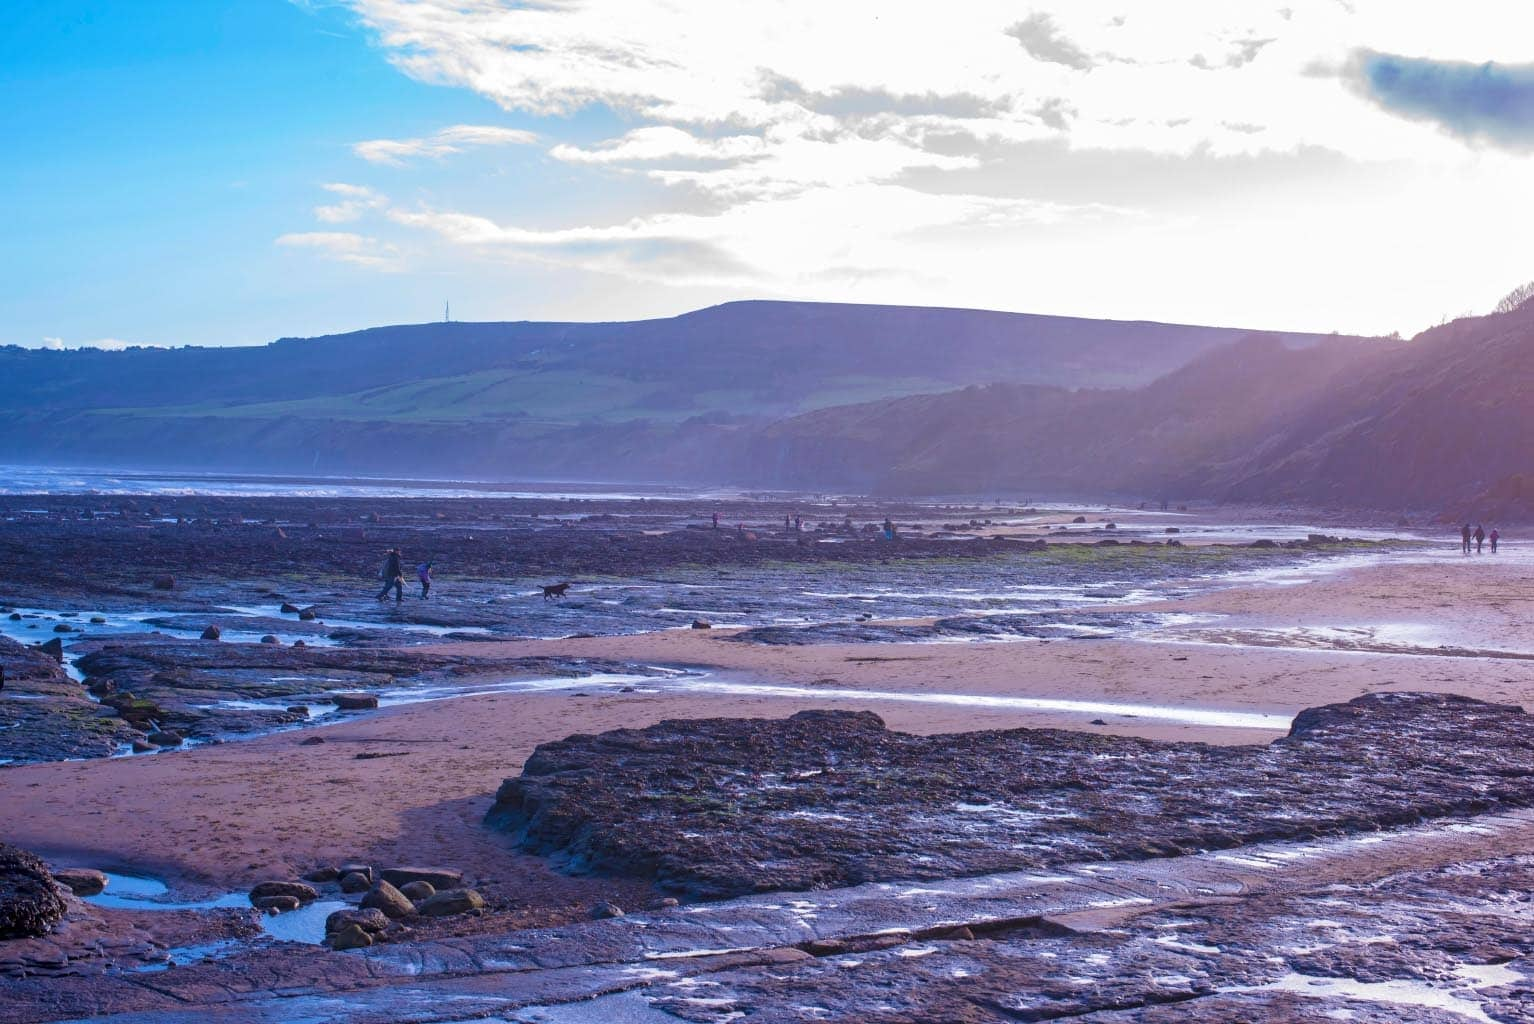 A shot over Robin Hood Bay with hills in the background